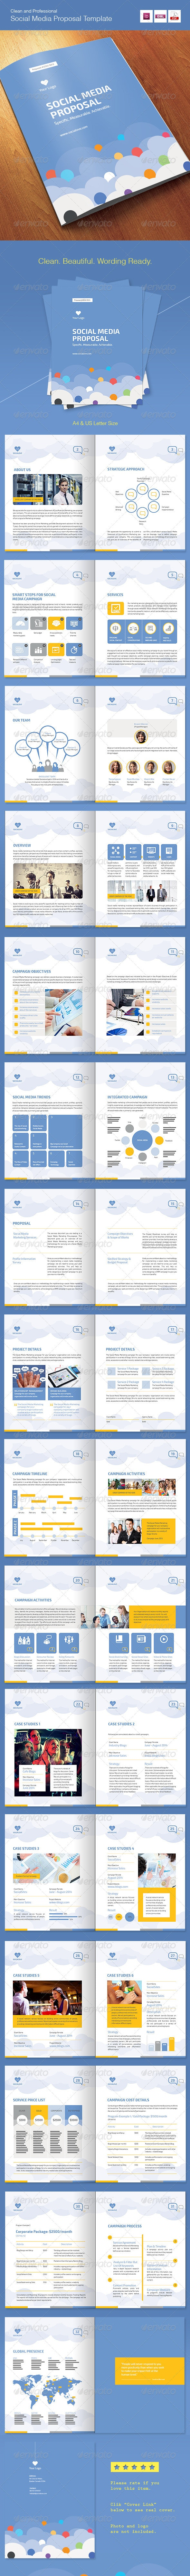 Social Media Proposal Template - Proposals & Invoices Stationery